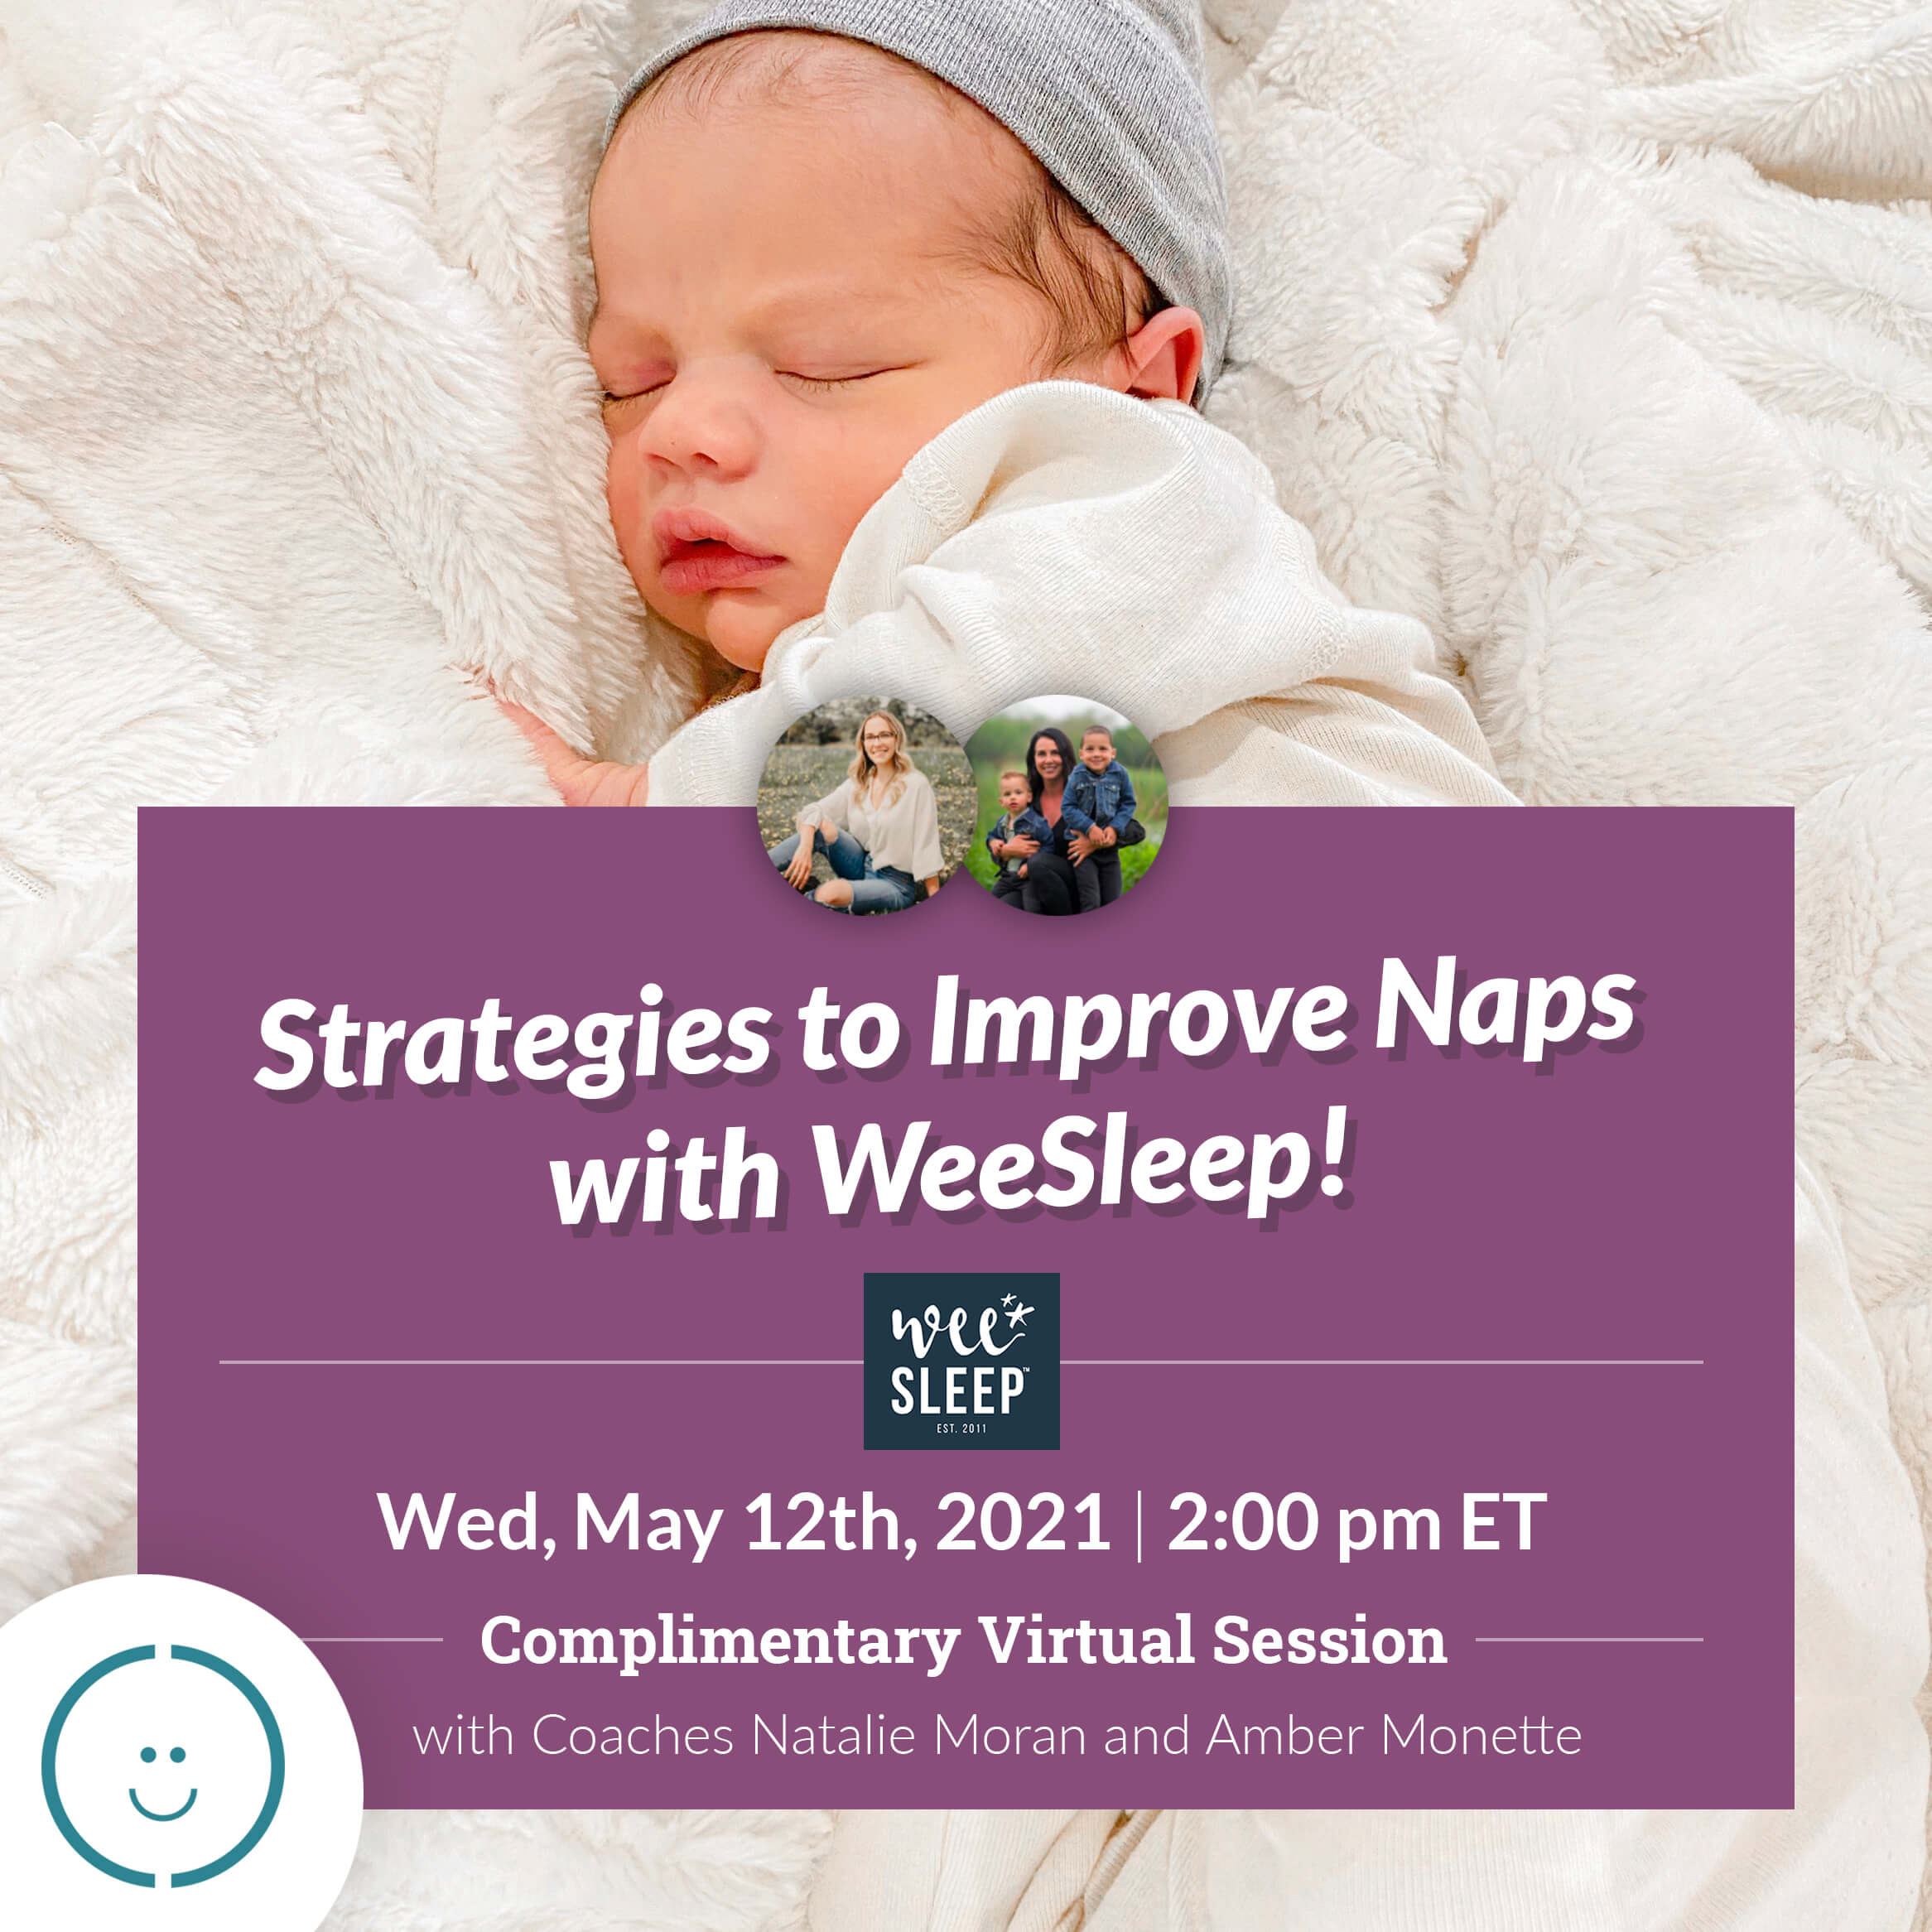 Strategies for Improving Naps with WeeSleep